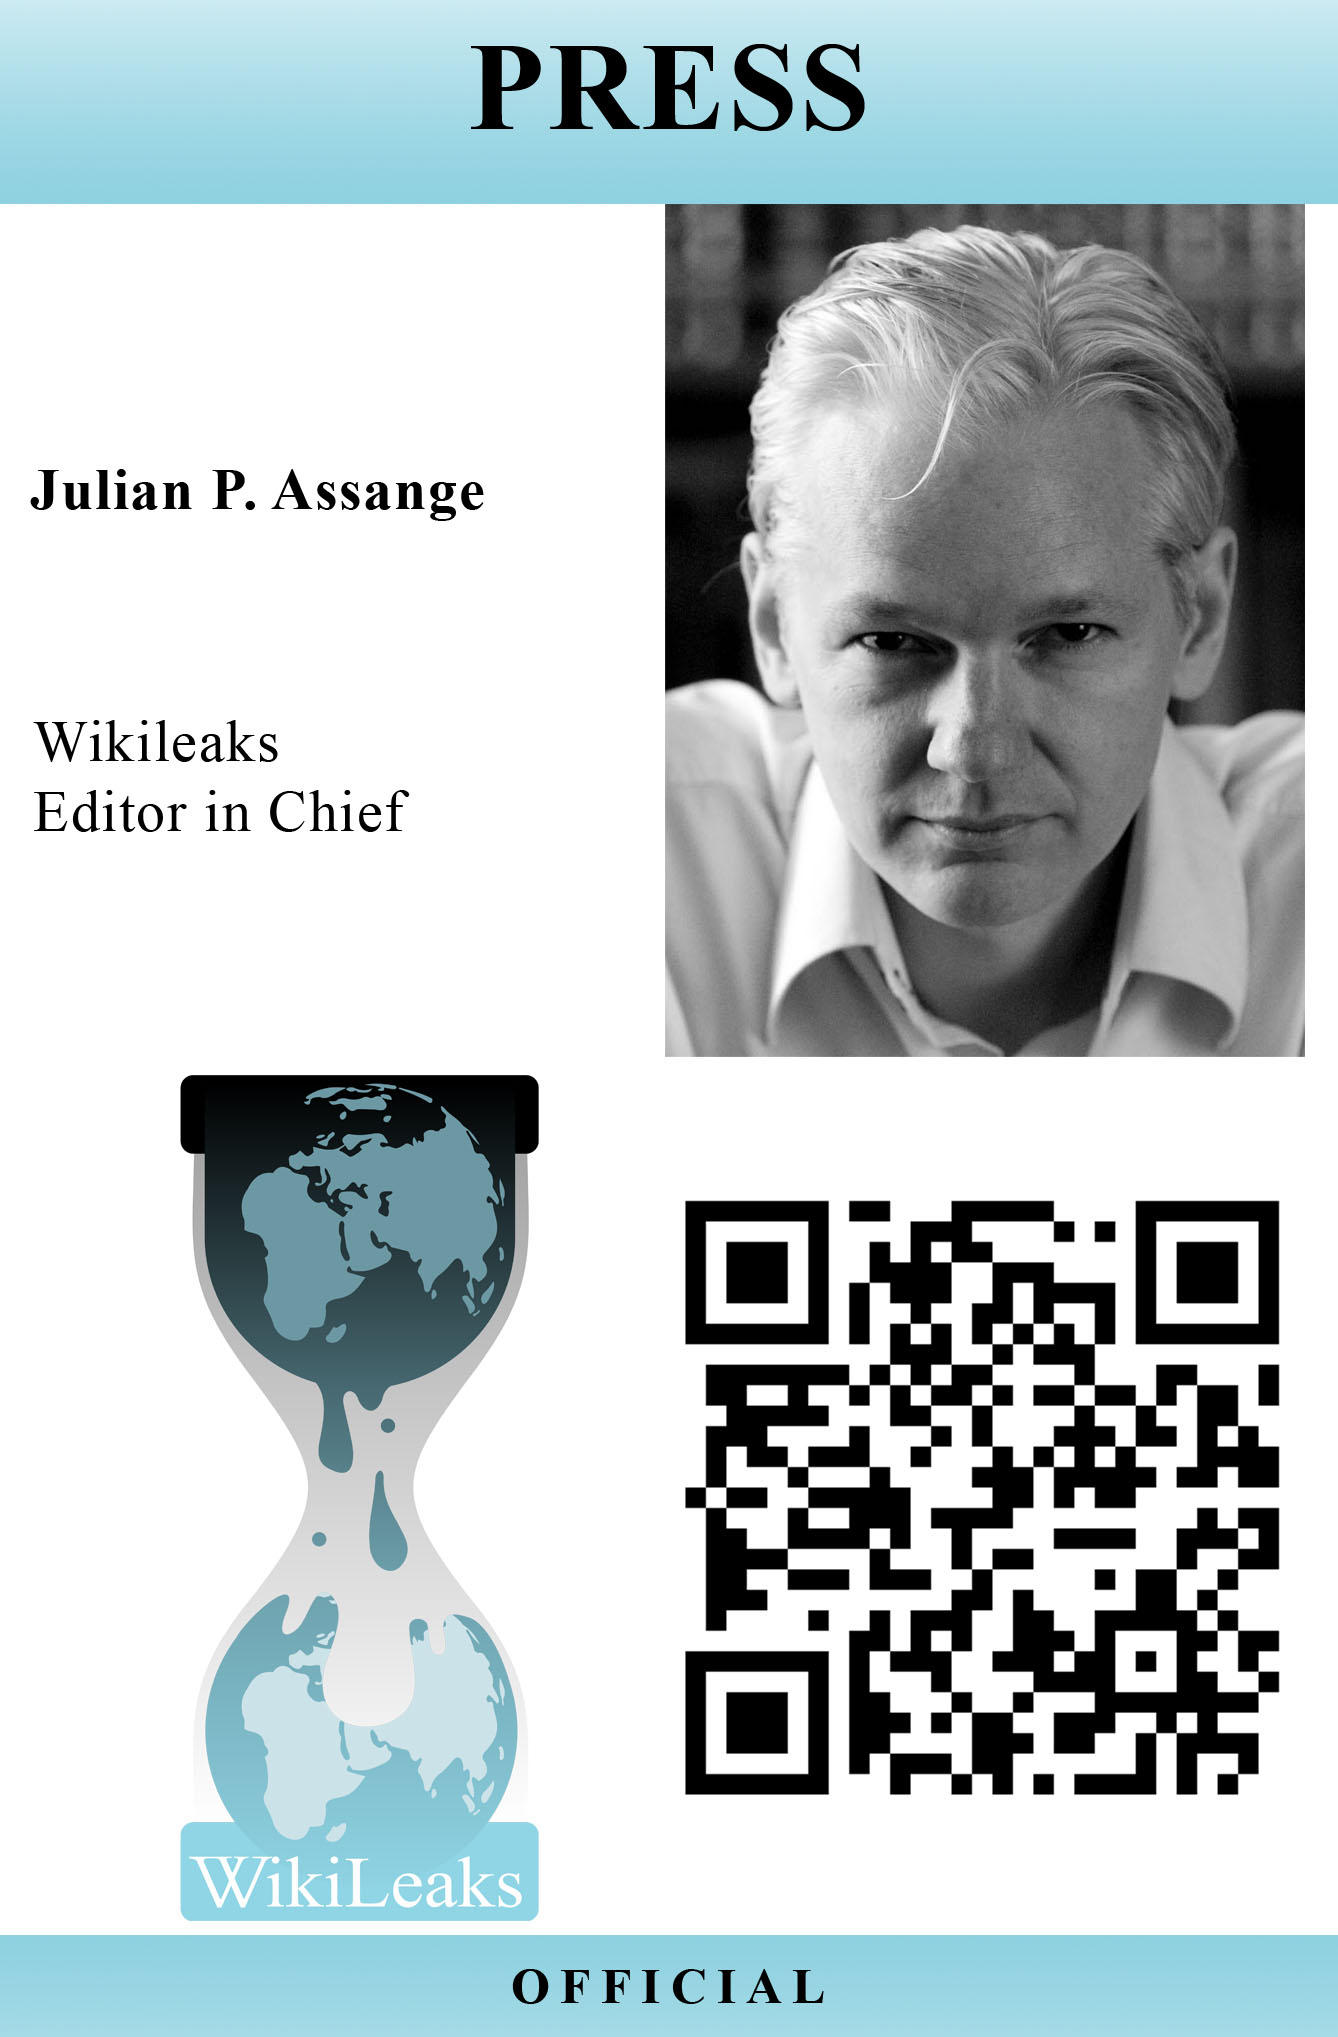 Wikileaks press pass template by juliets designs on deviantart for Media press pass template